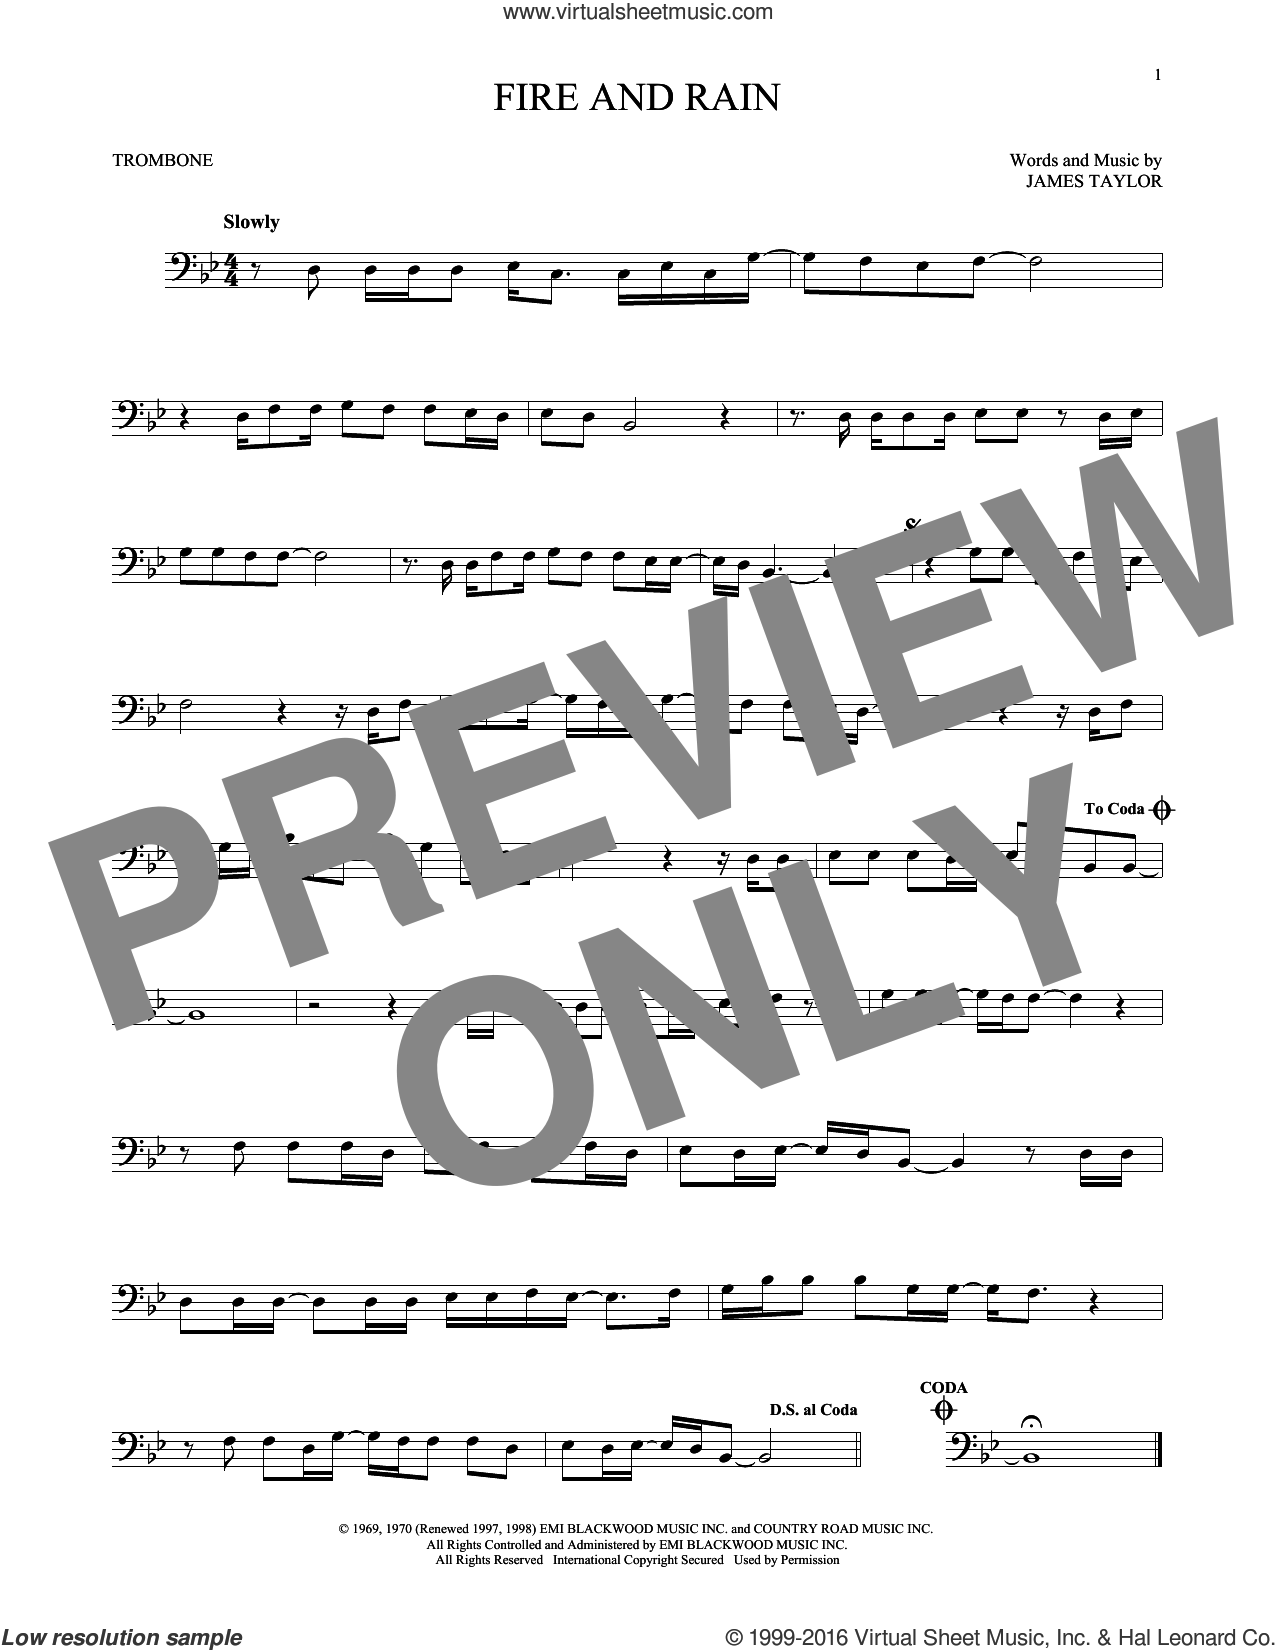 Fire And Rain sheet music for trombone solo by James Taylor, intermediate skill level